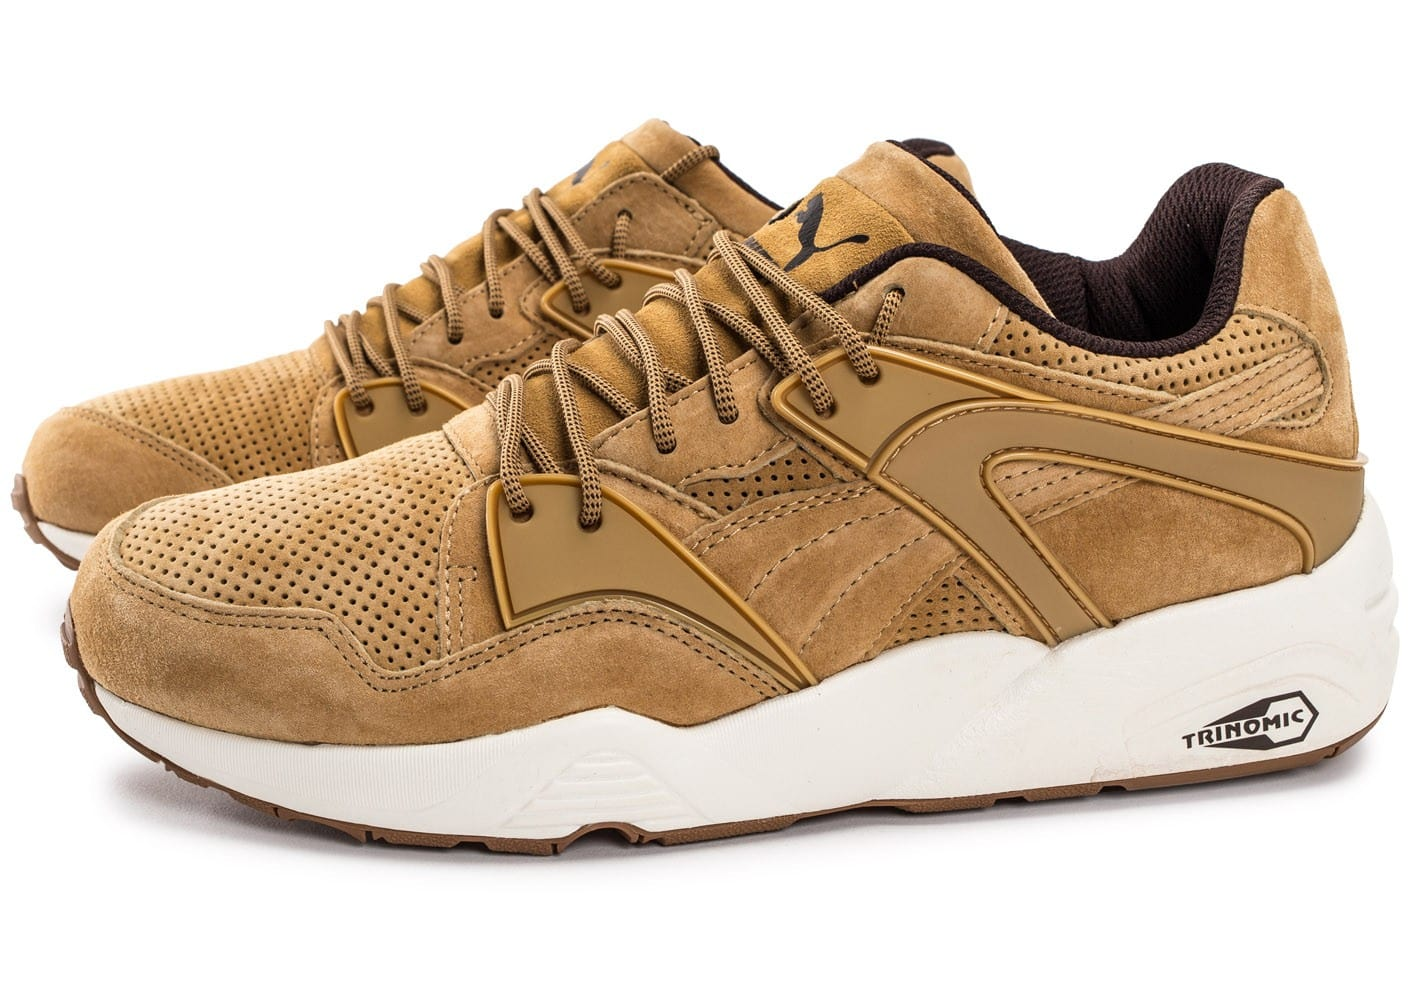 Puma Trinomic Blaze of Glory Winterized Taffy beige